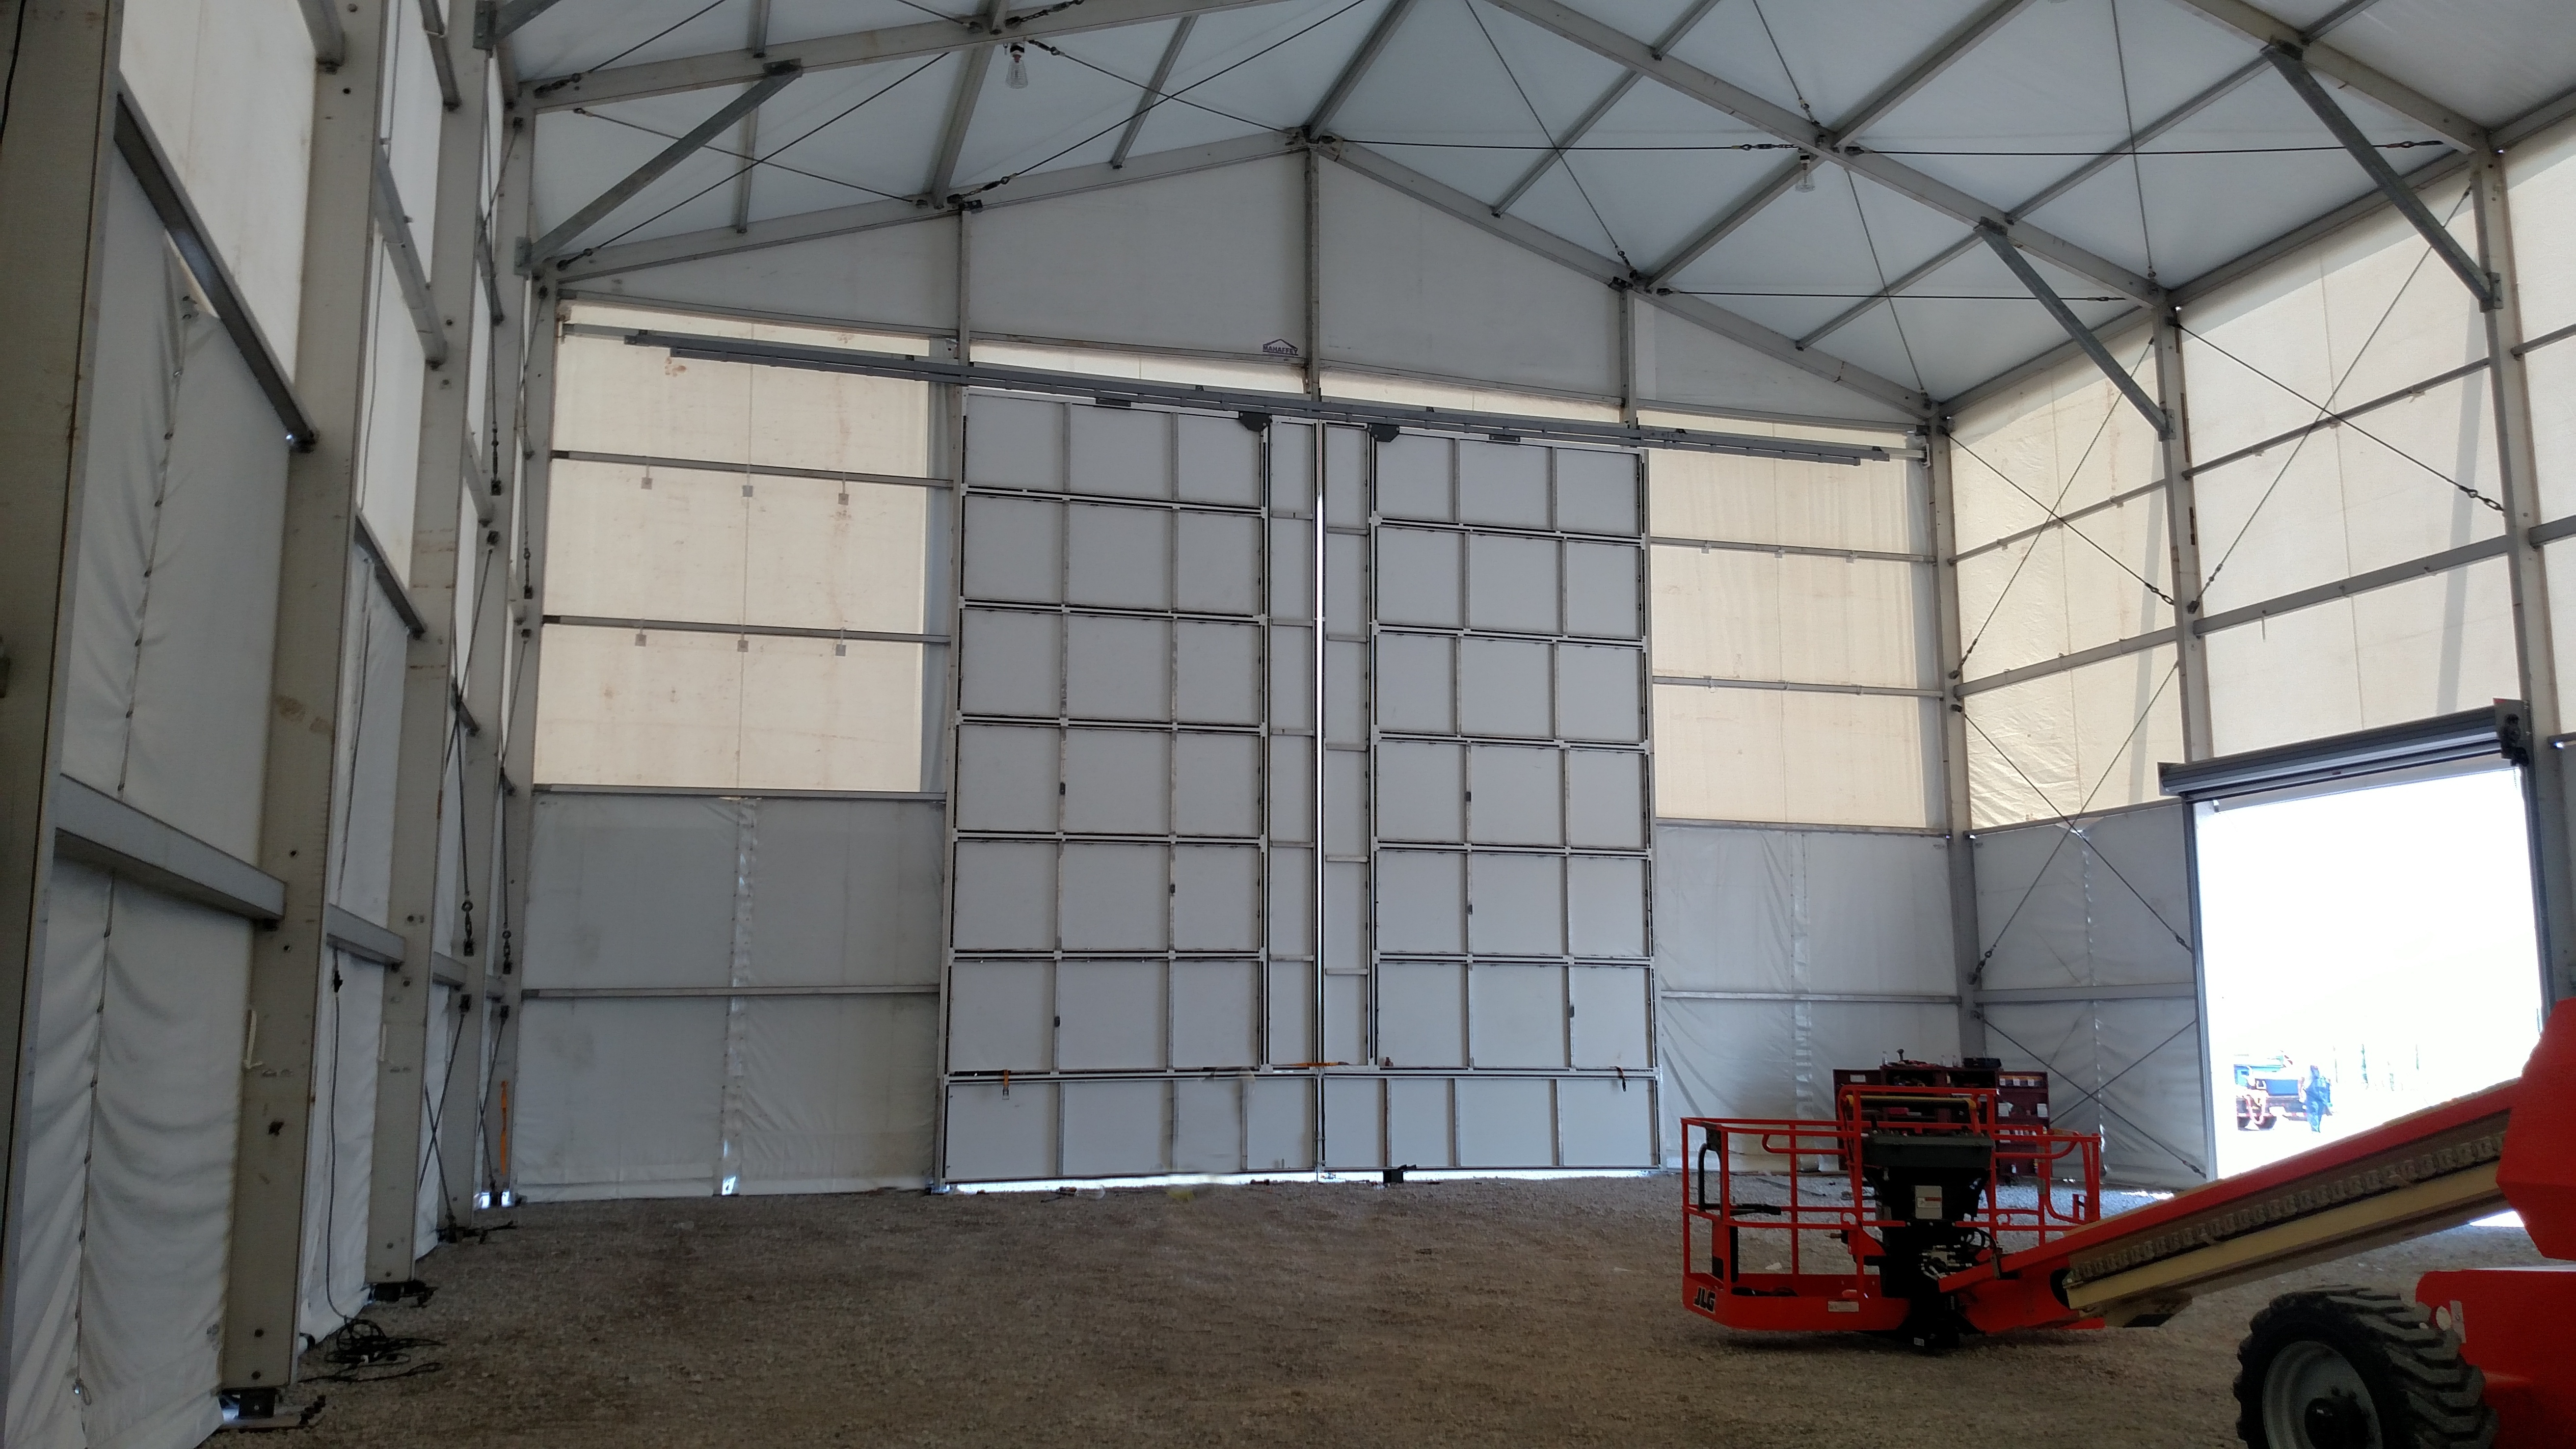 Barn door on temporary structure interior